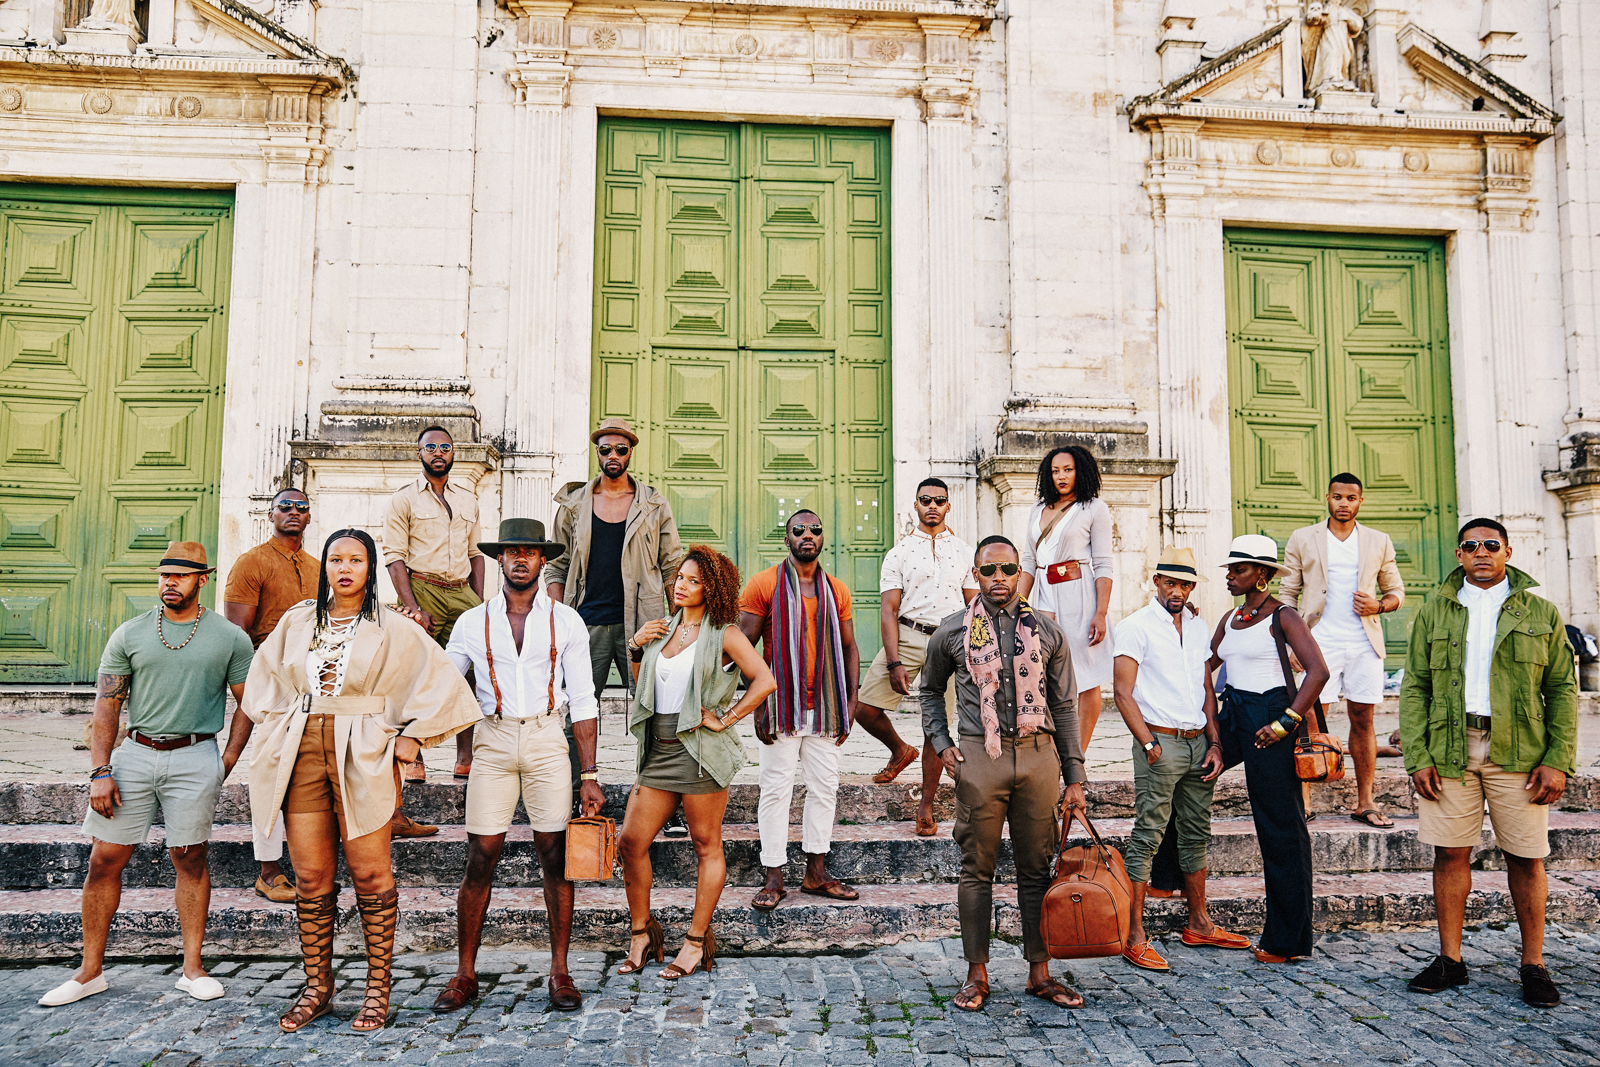 Salvador de Bahia, 2016.  Many slaves were auctioned in this square. We stand strong and proud in rememberance.